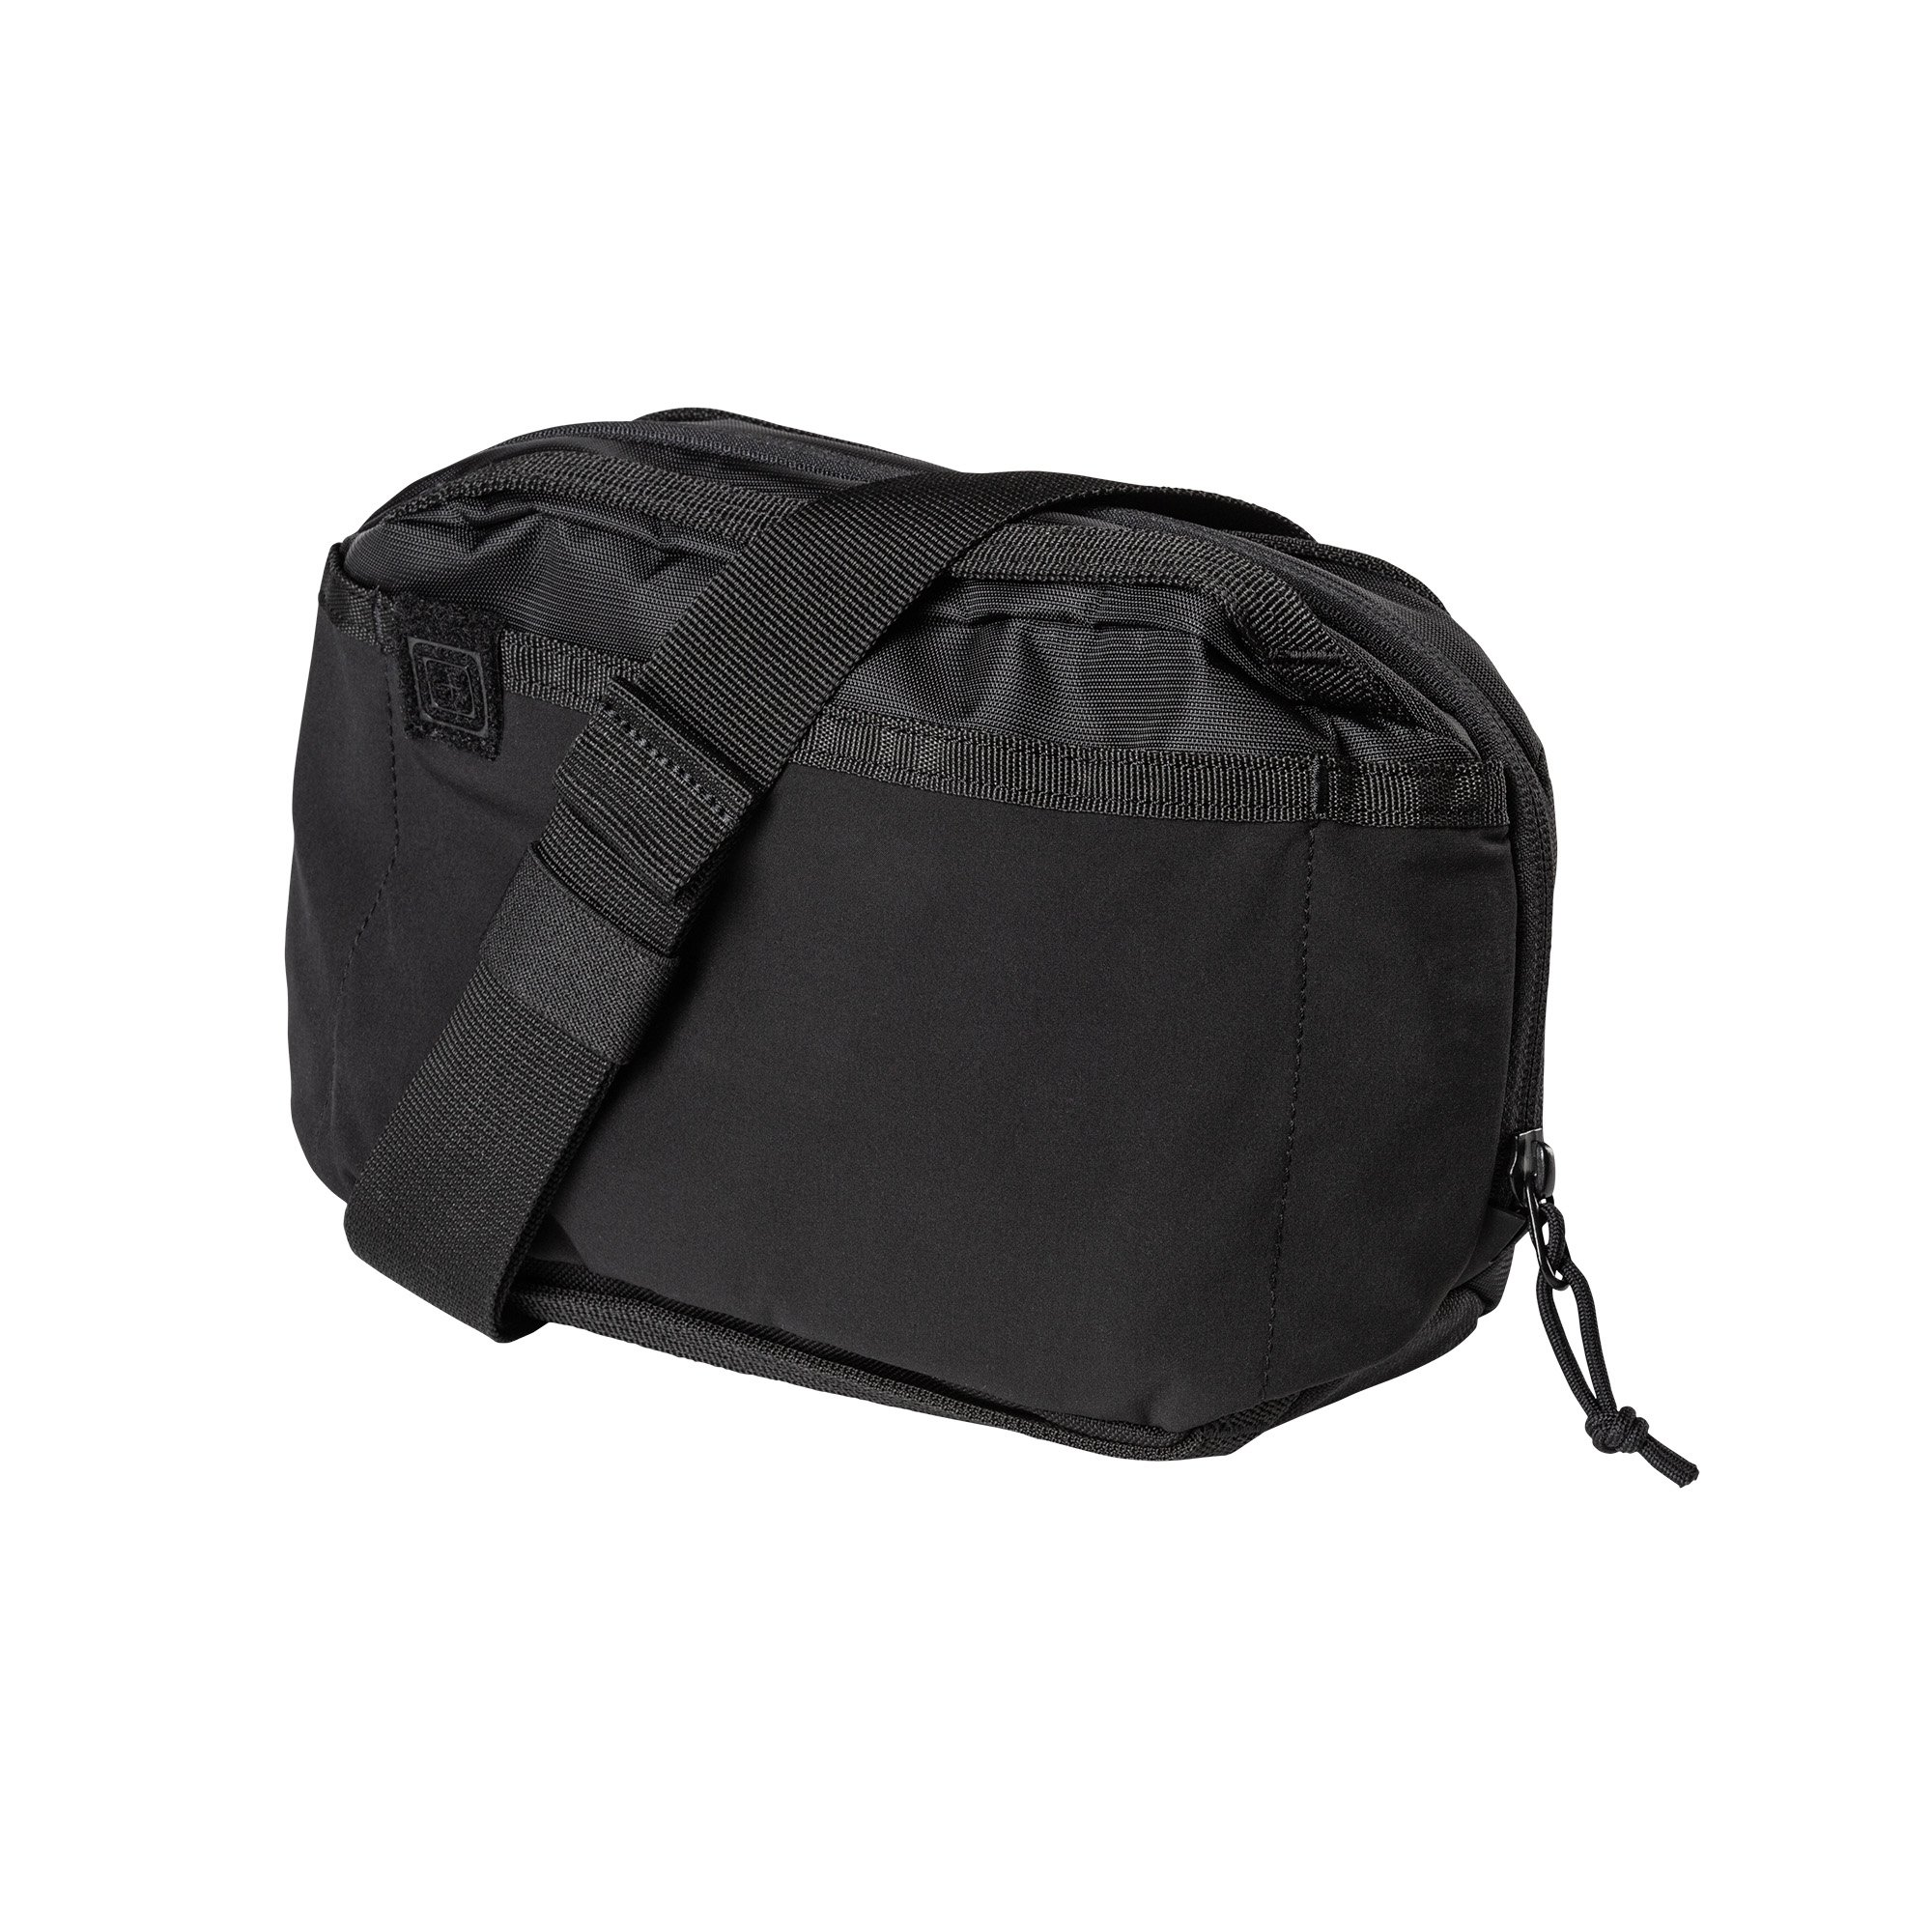 EMERGENCY READY POUCH 3L – Black